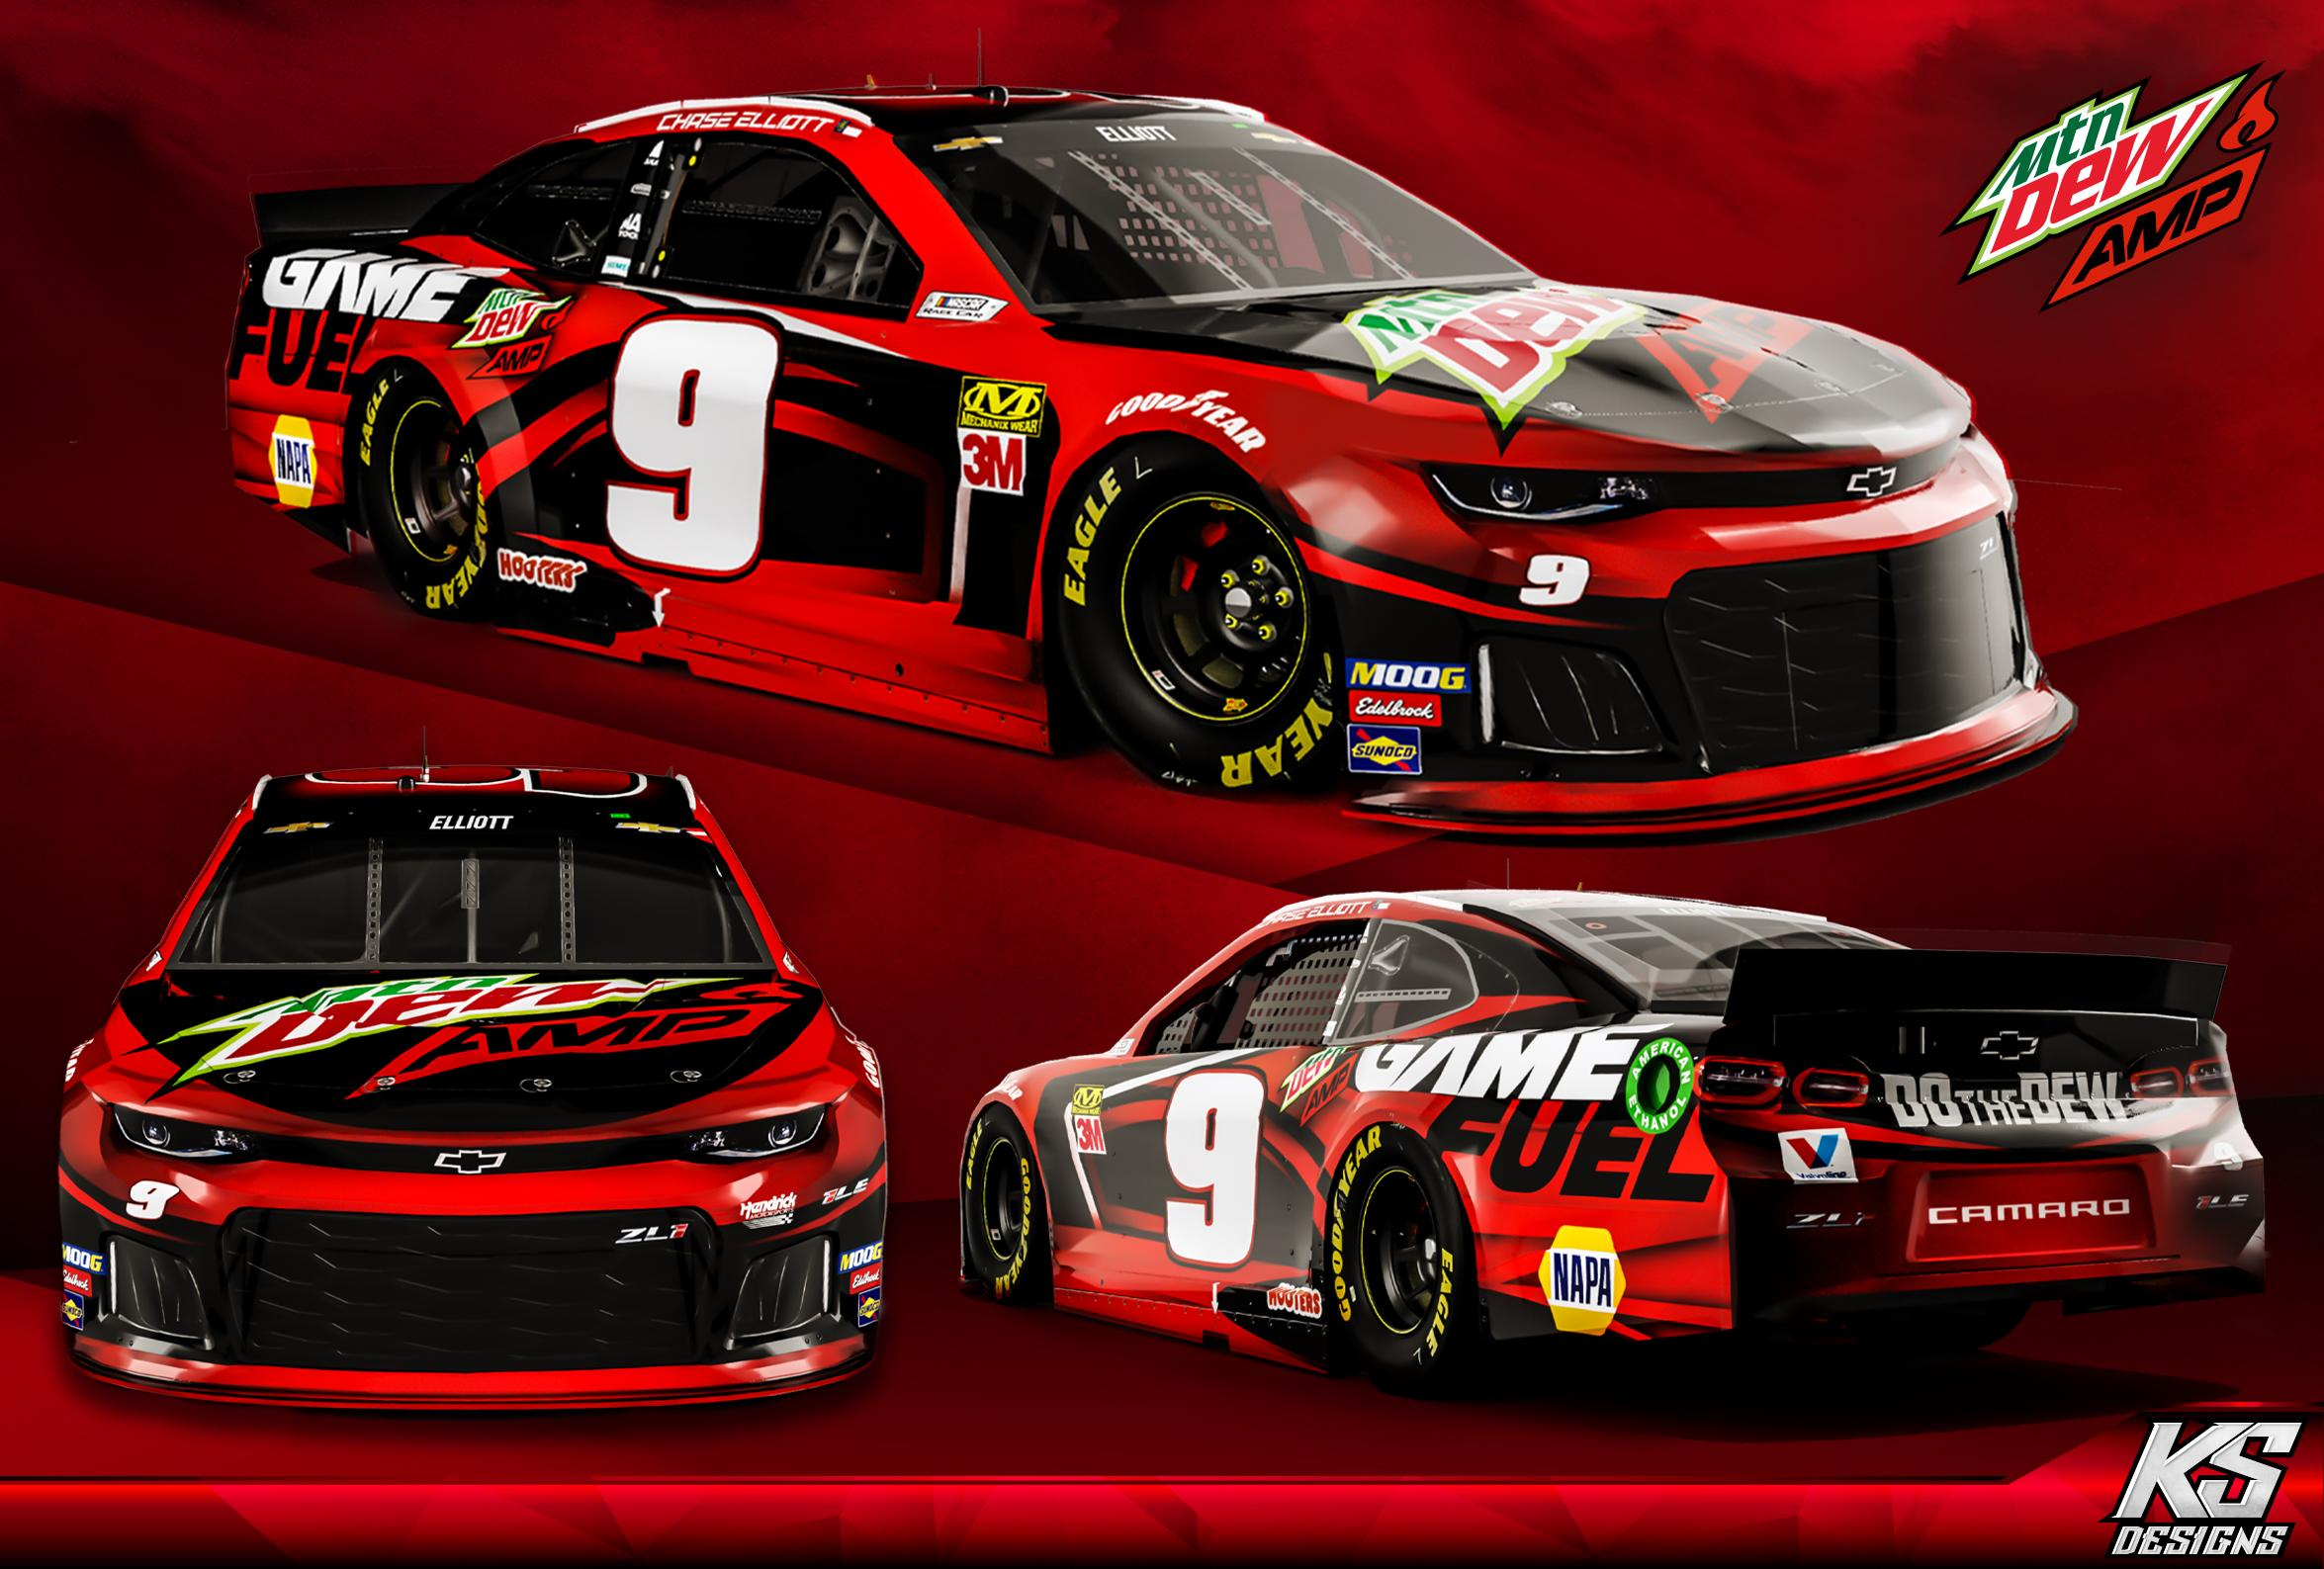 Preview of Chase Elliott Game Fuel | Mtn Dew Amp concept - Red  by Kyle Sykes